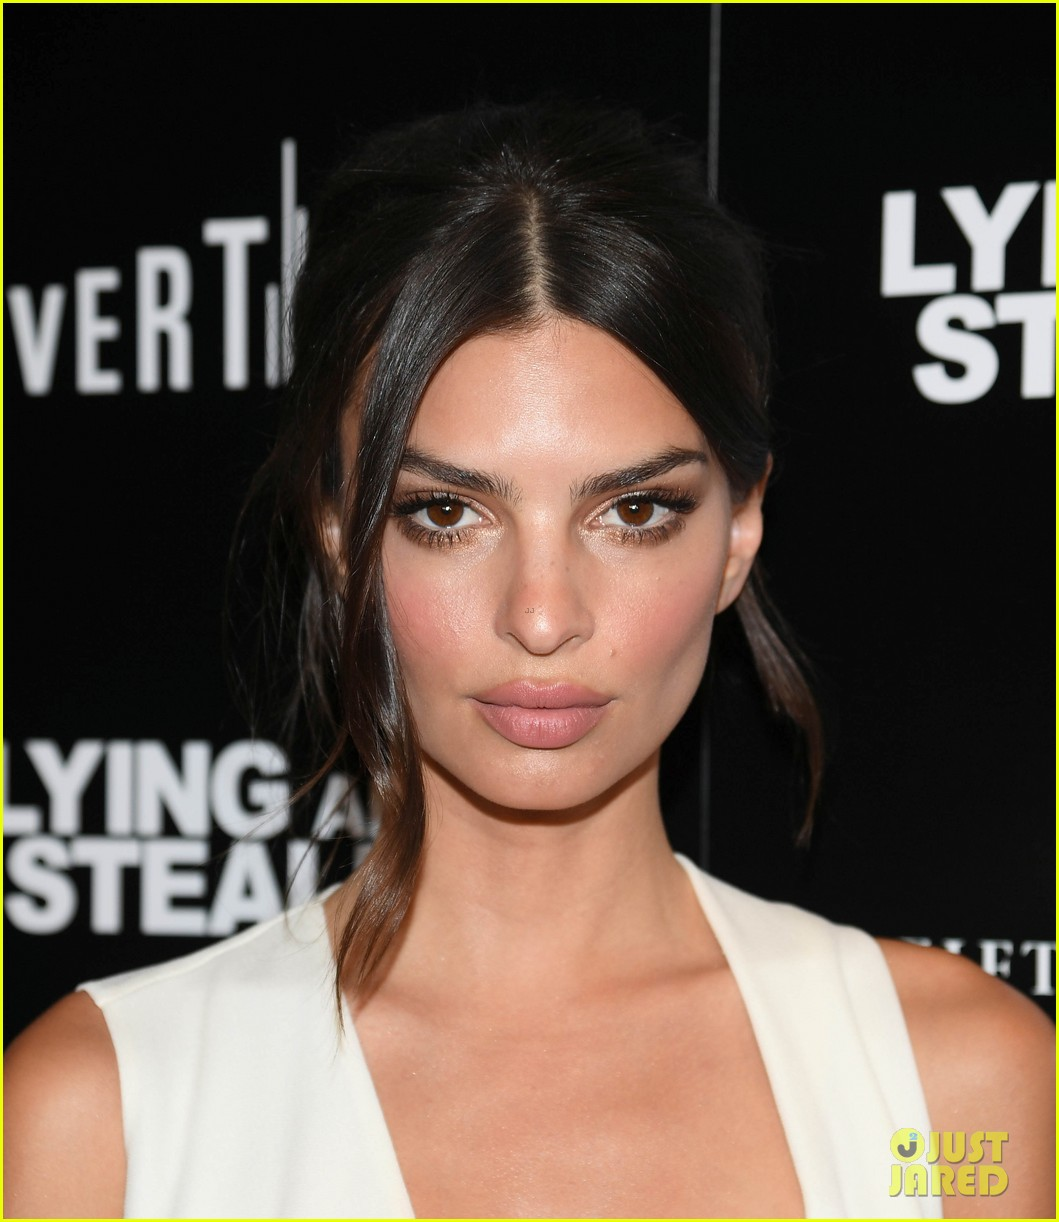 emily ratajkowski wows in white dress at lying and stealing screening in nyc 094311343